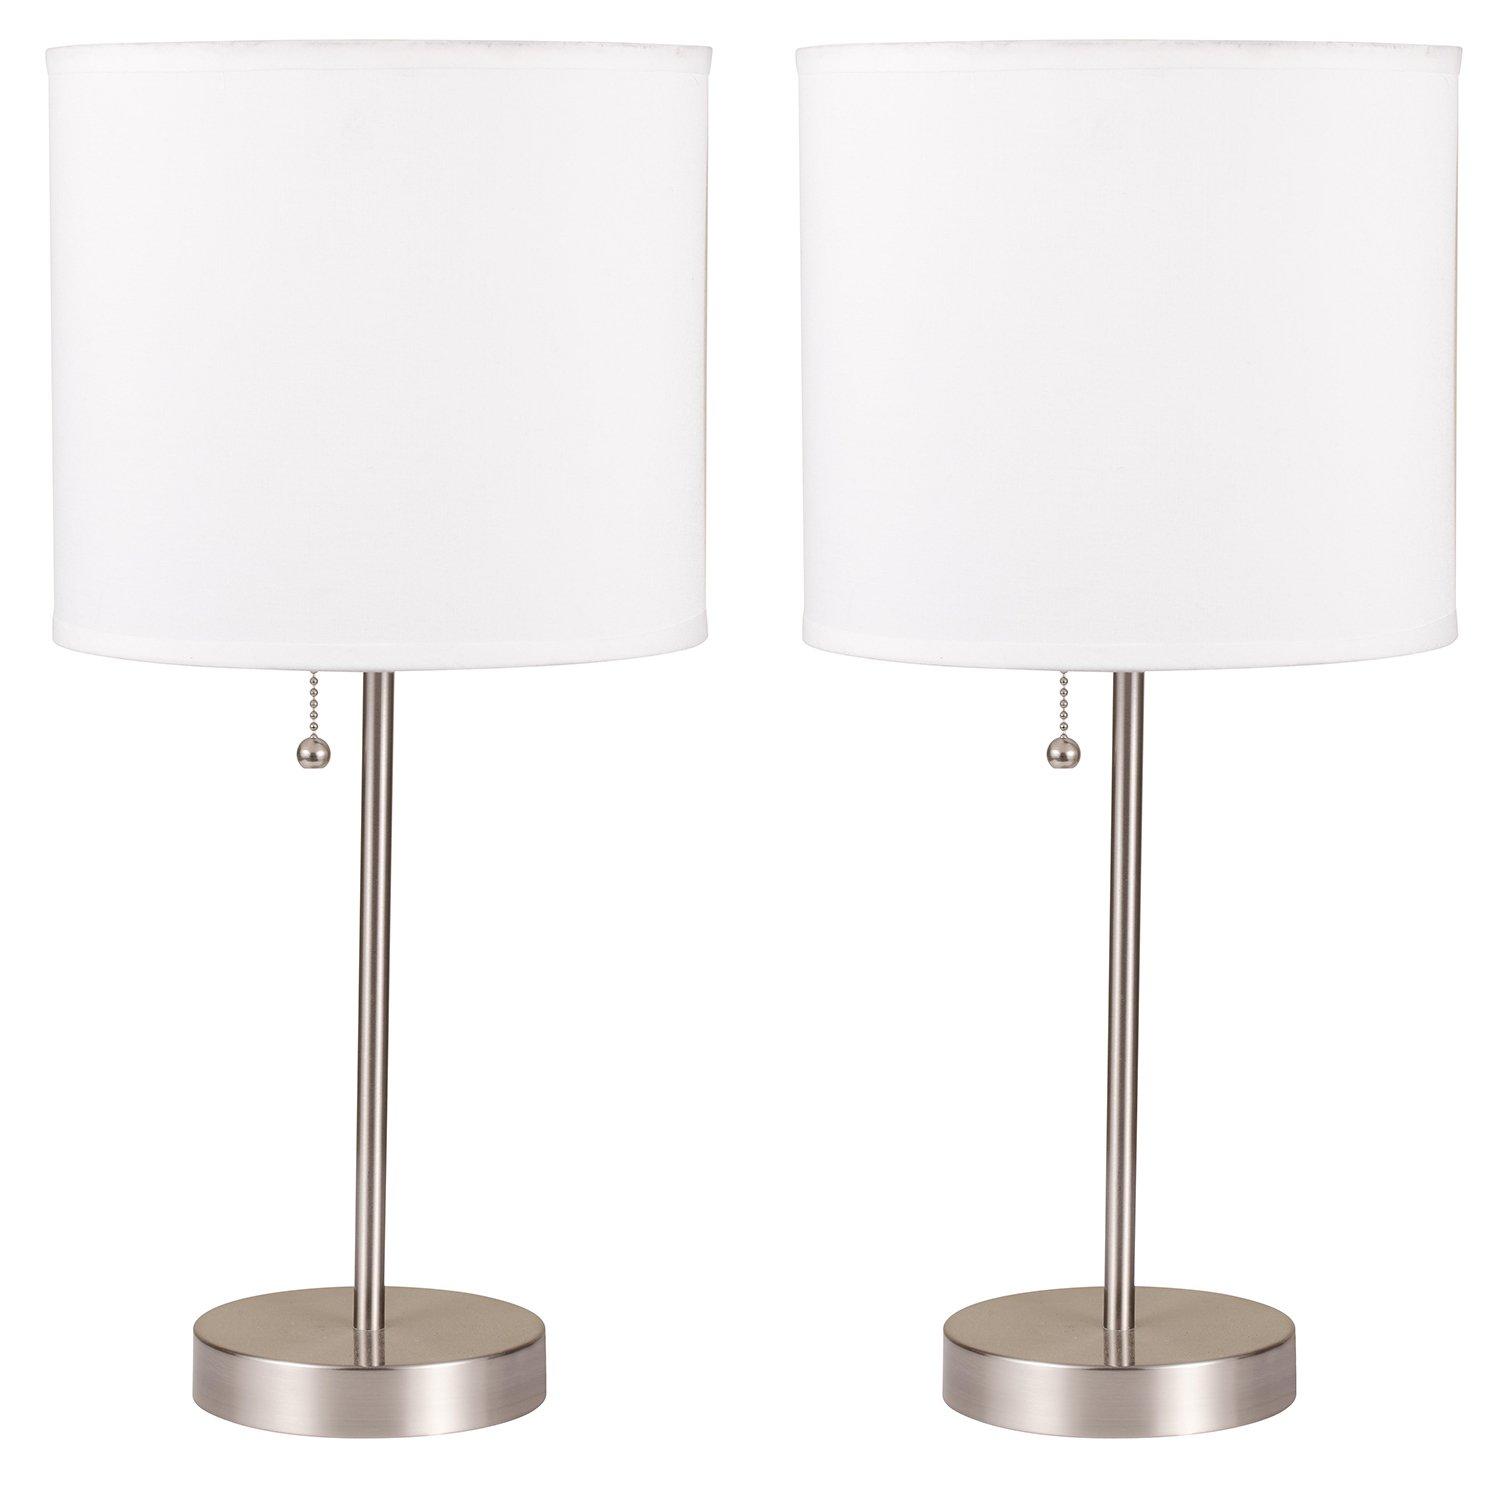 Milton Greens Stars A8312DT-S Ruslana Contemporary Table Lamp Plain White, 18.5-Inch, Set of 2